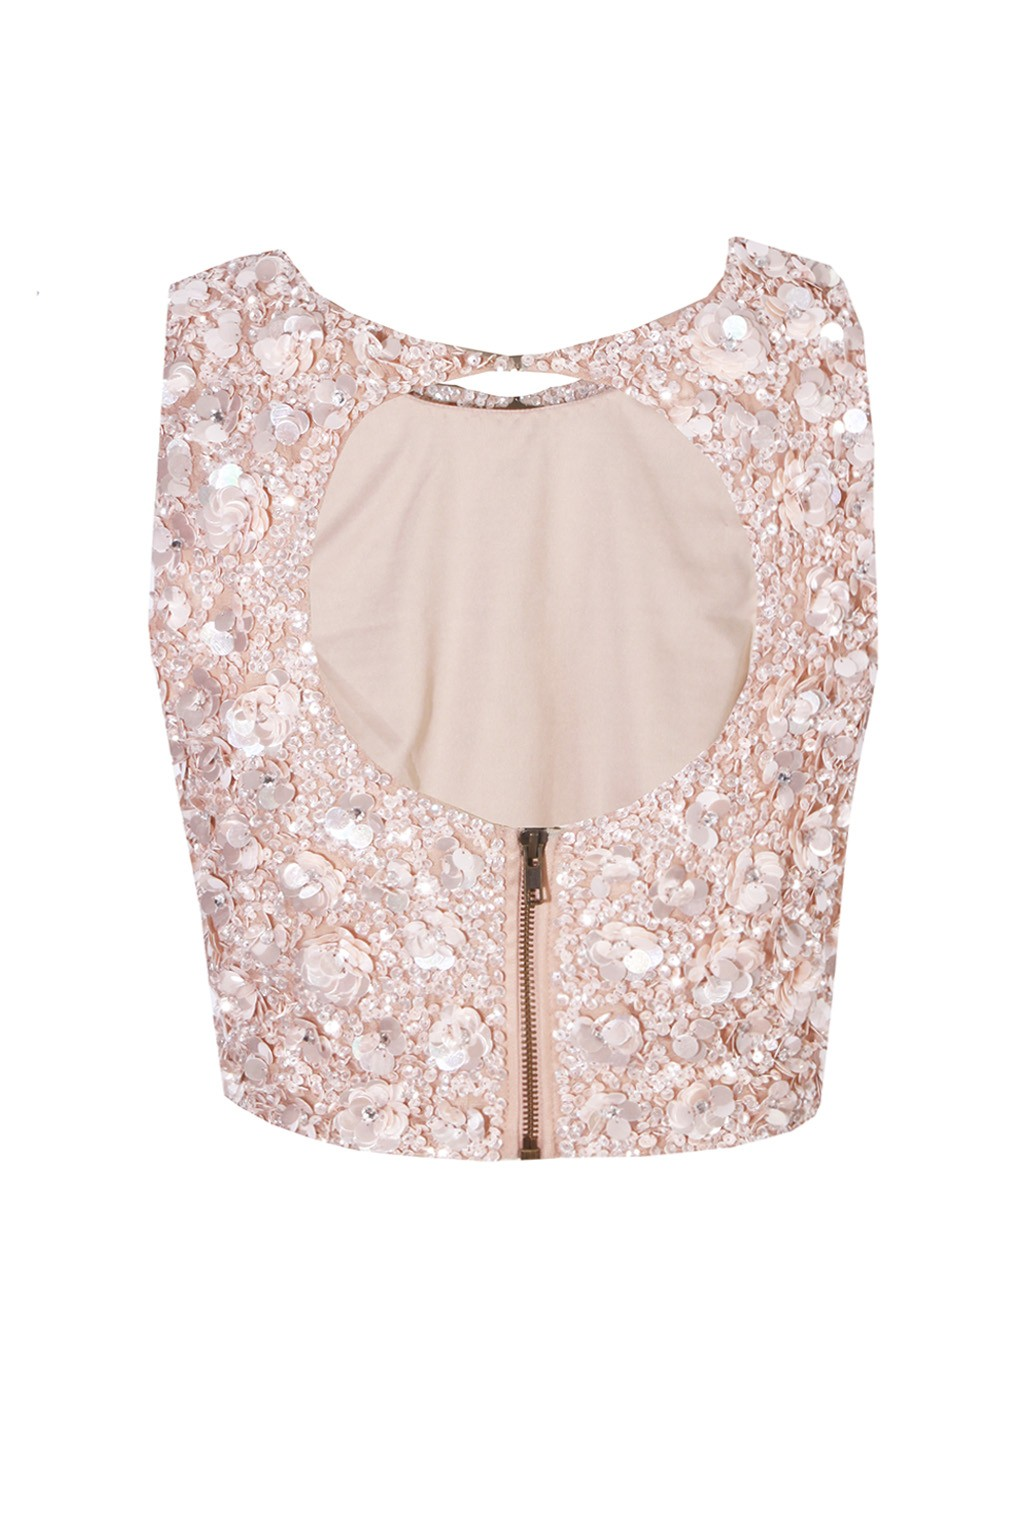 Lace Amp Beads Hazel Cut Out Pink Sequin Top Lace Amp Beads Tops